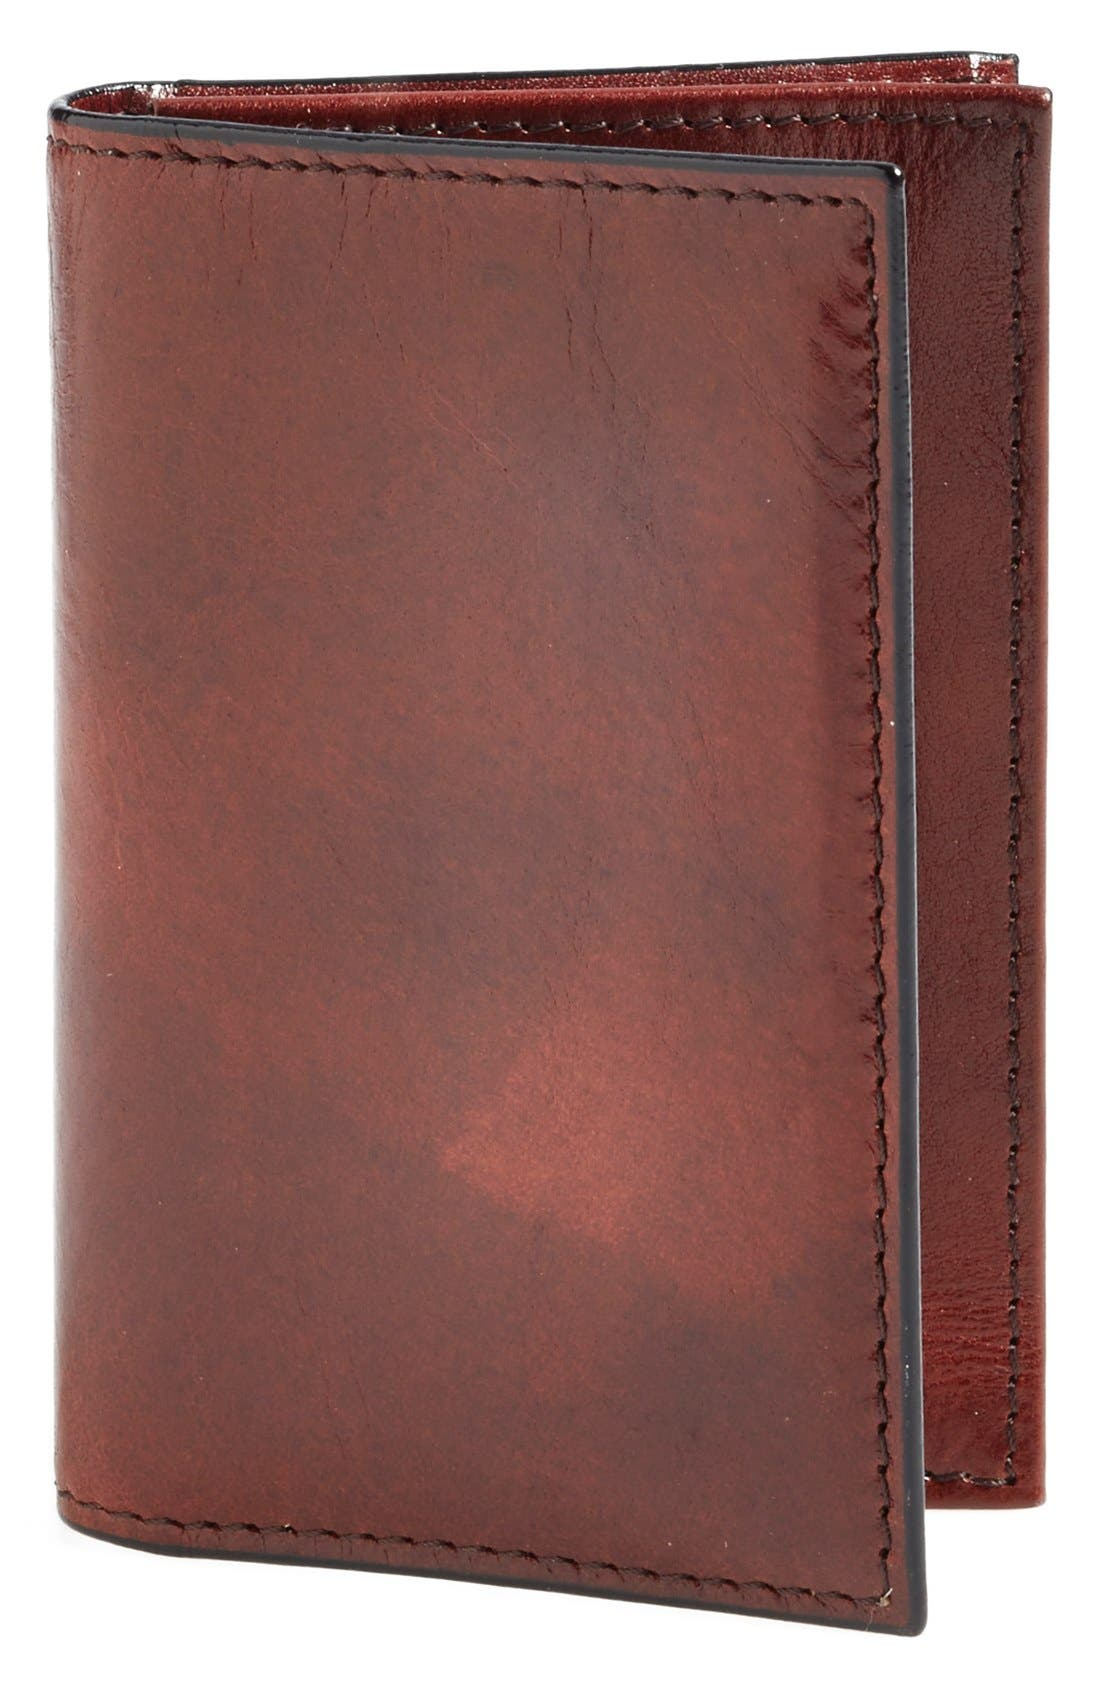 Main Image - Bosca 'Old Leather' Gusset Wallet